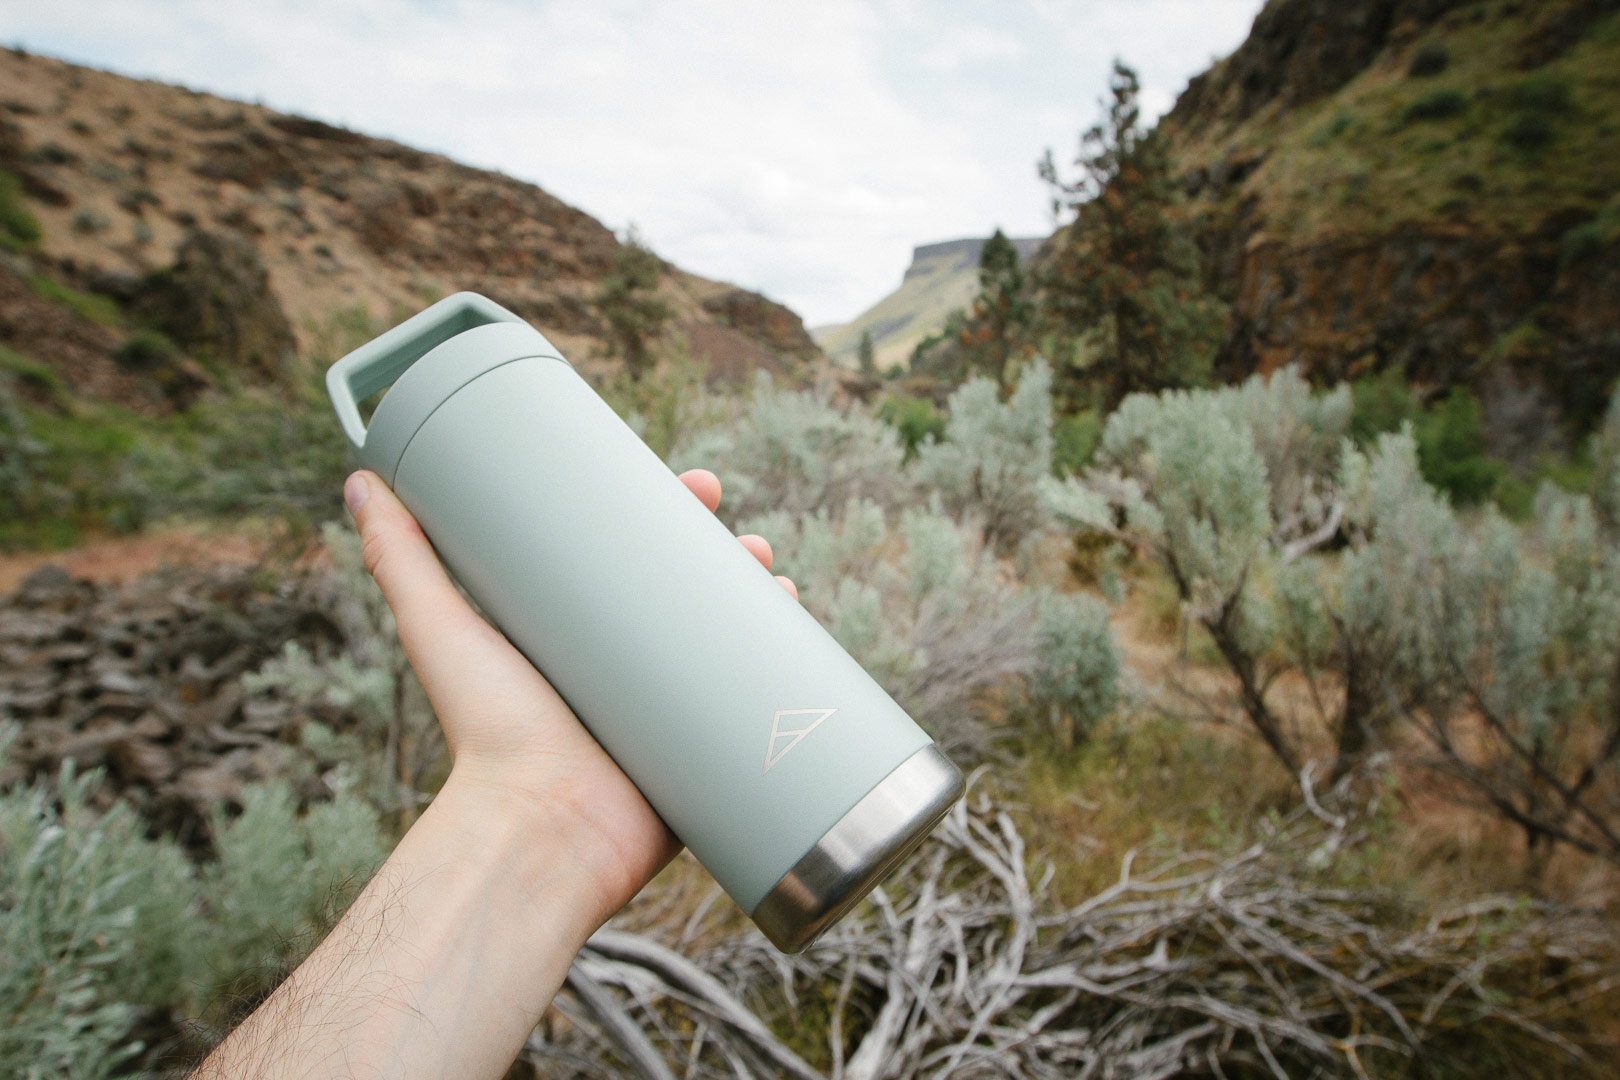 The New Metolius Water Bottle - Responsibly Made, and Built for a Lifetime